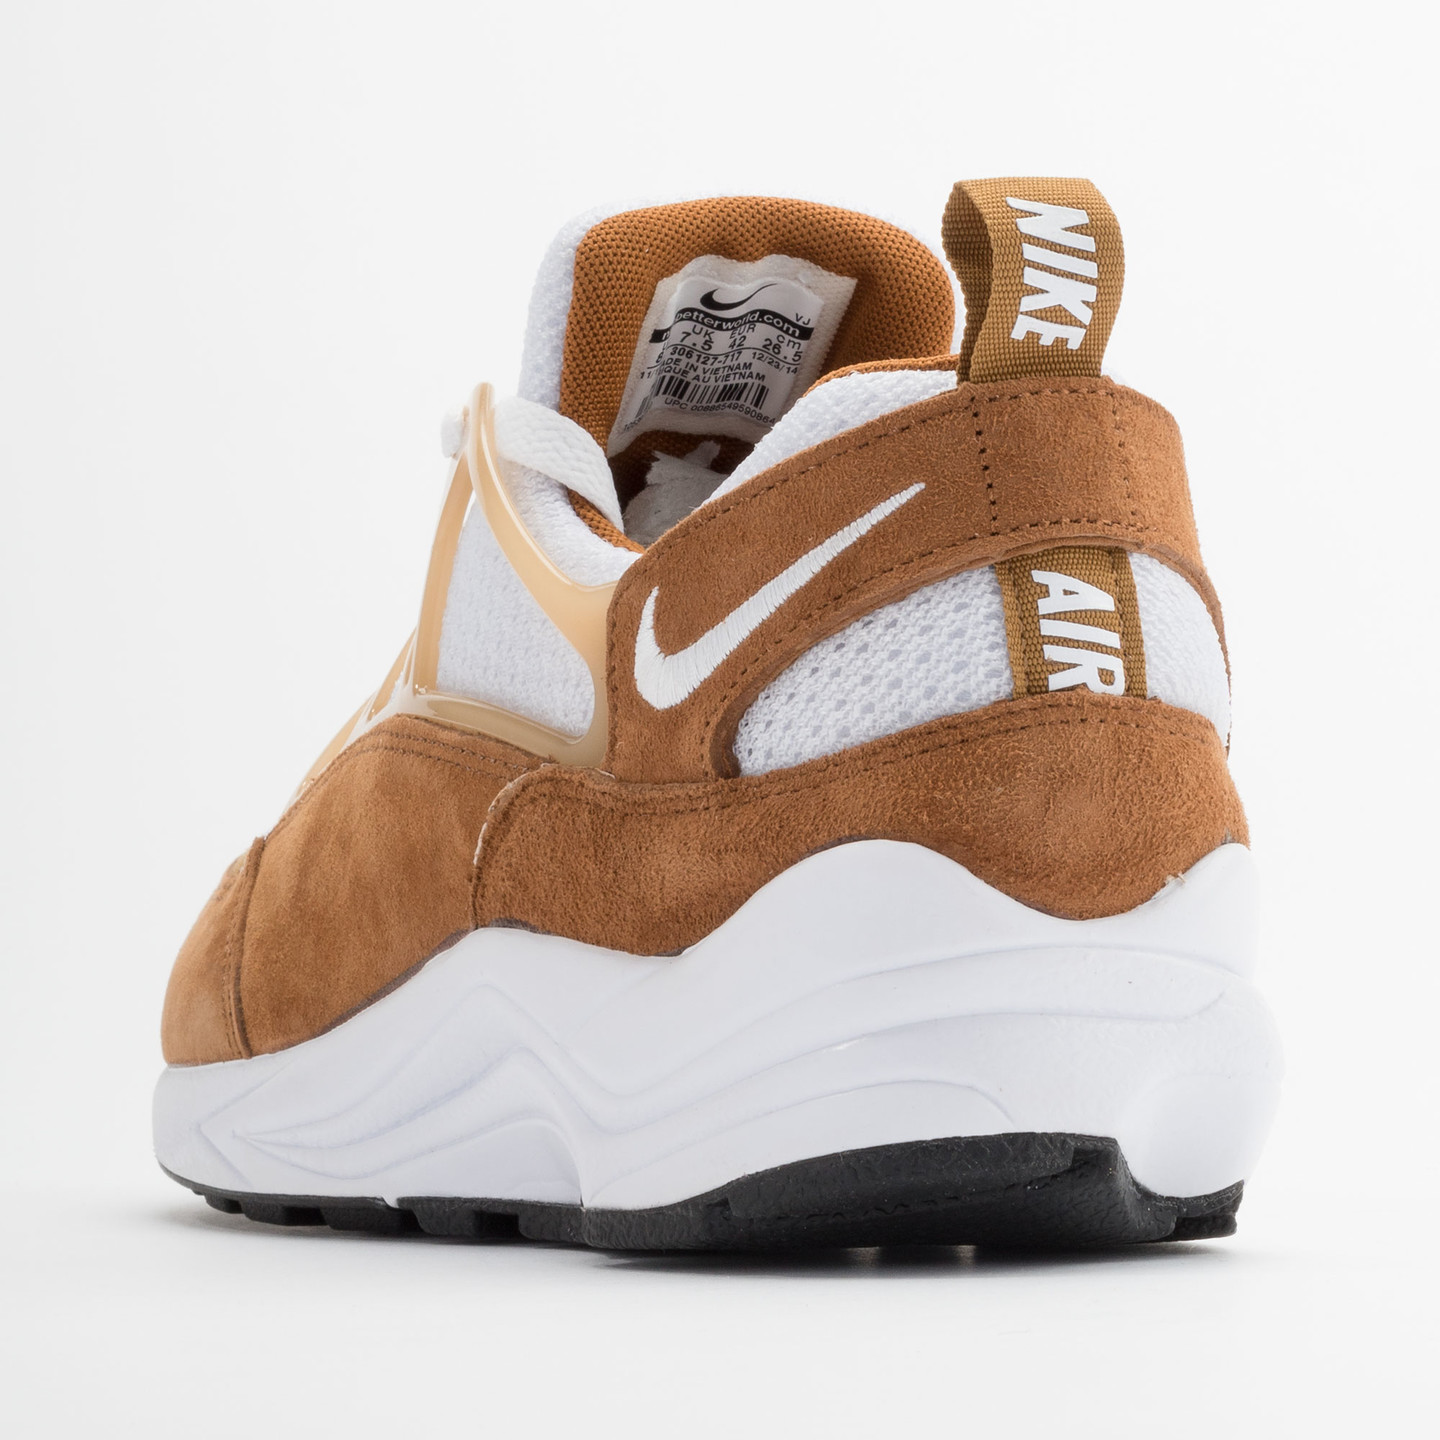 Nike Air Huarache Light Dark Curry / White-Wheat 306127-717-47